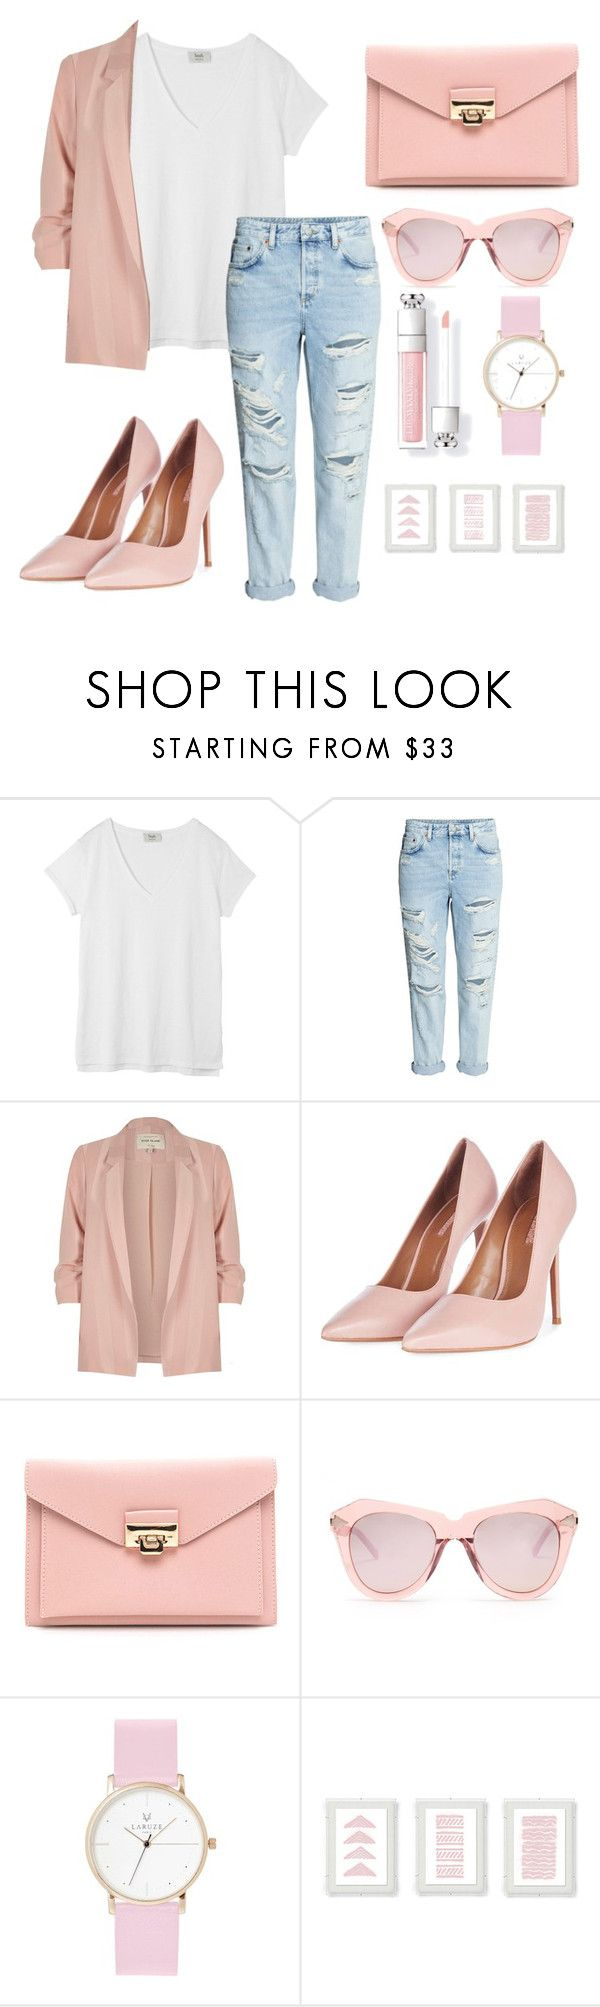 """""""how to style plain white shirt ¿"""" by amateurishstyle ❤ liked on Polyvore featuring Hush, River Island, Topshop, Karen Walker and Laruze"""